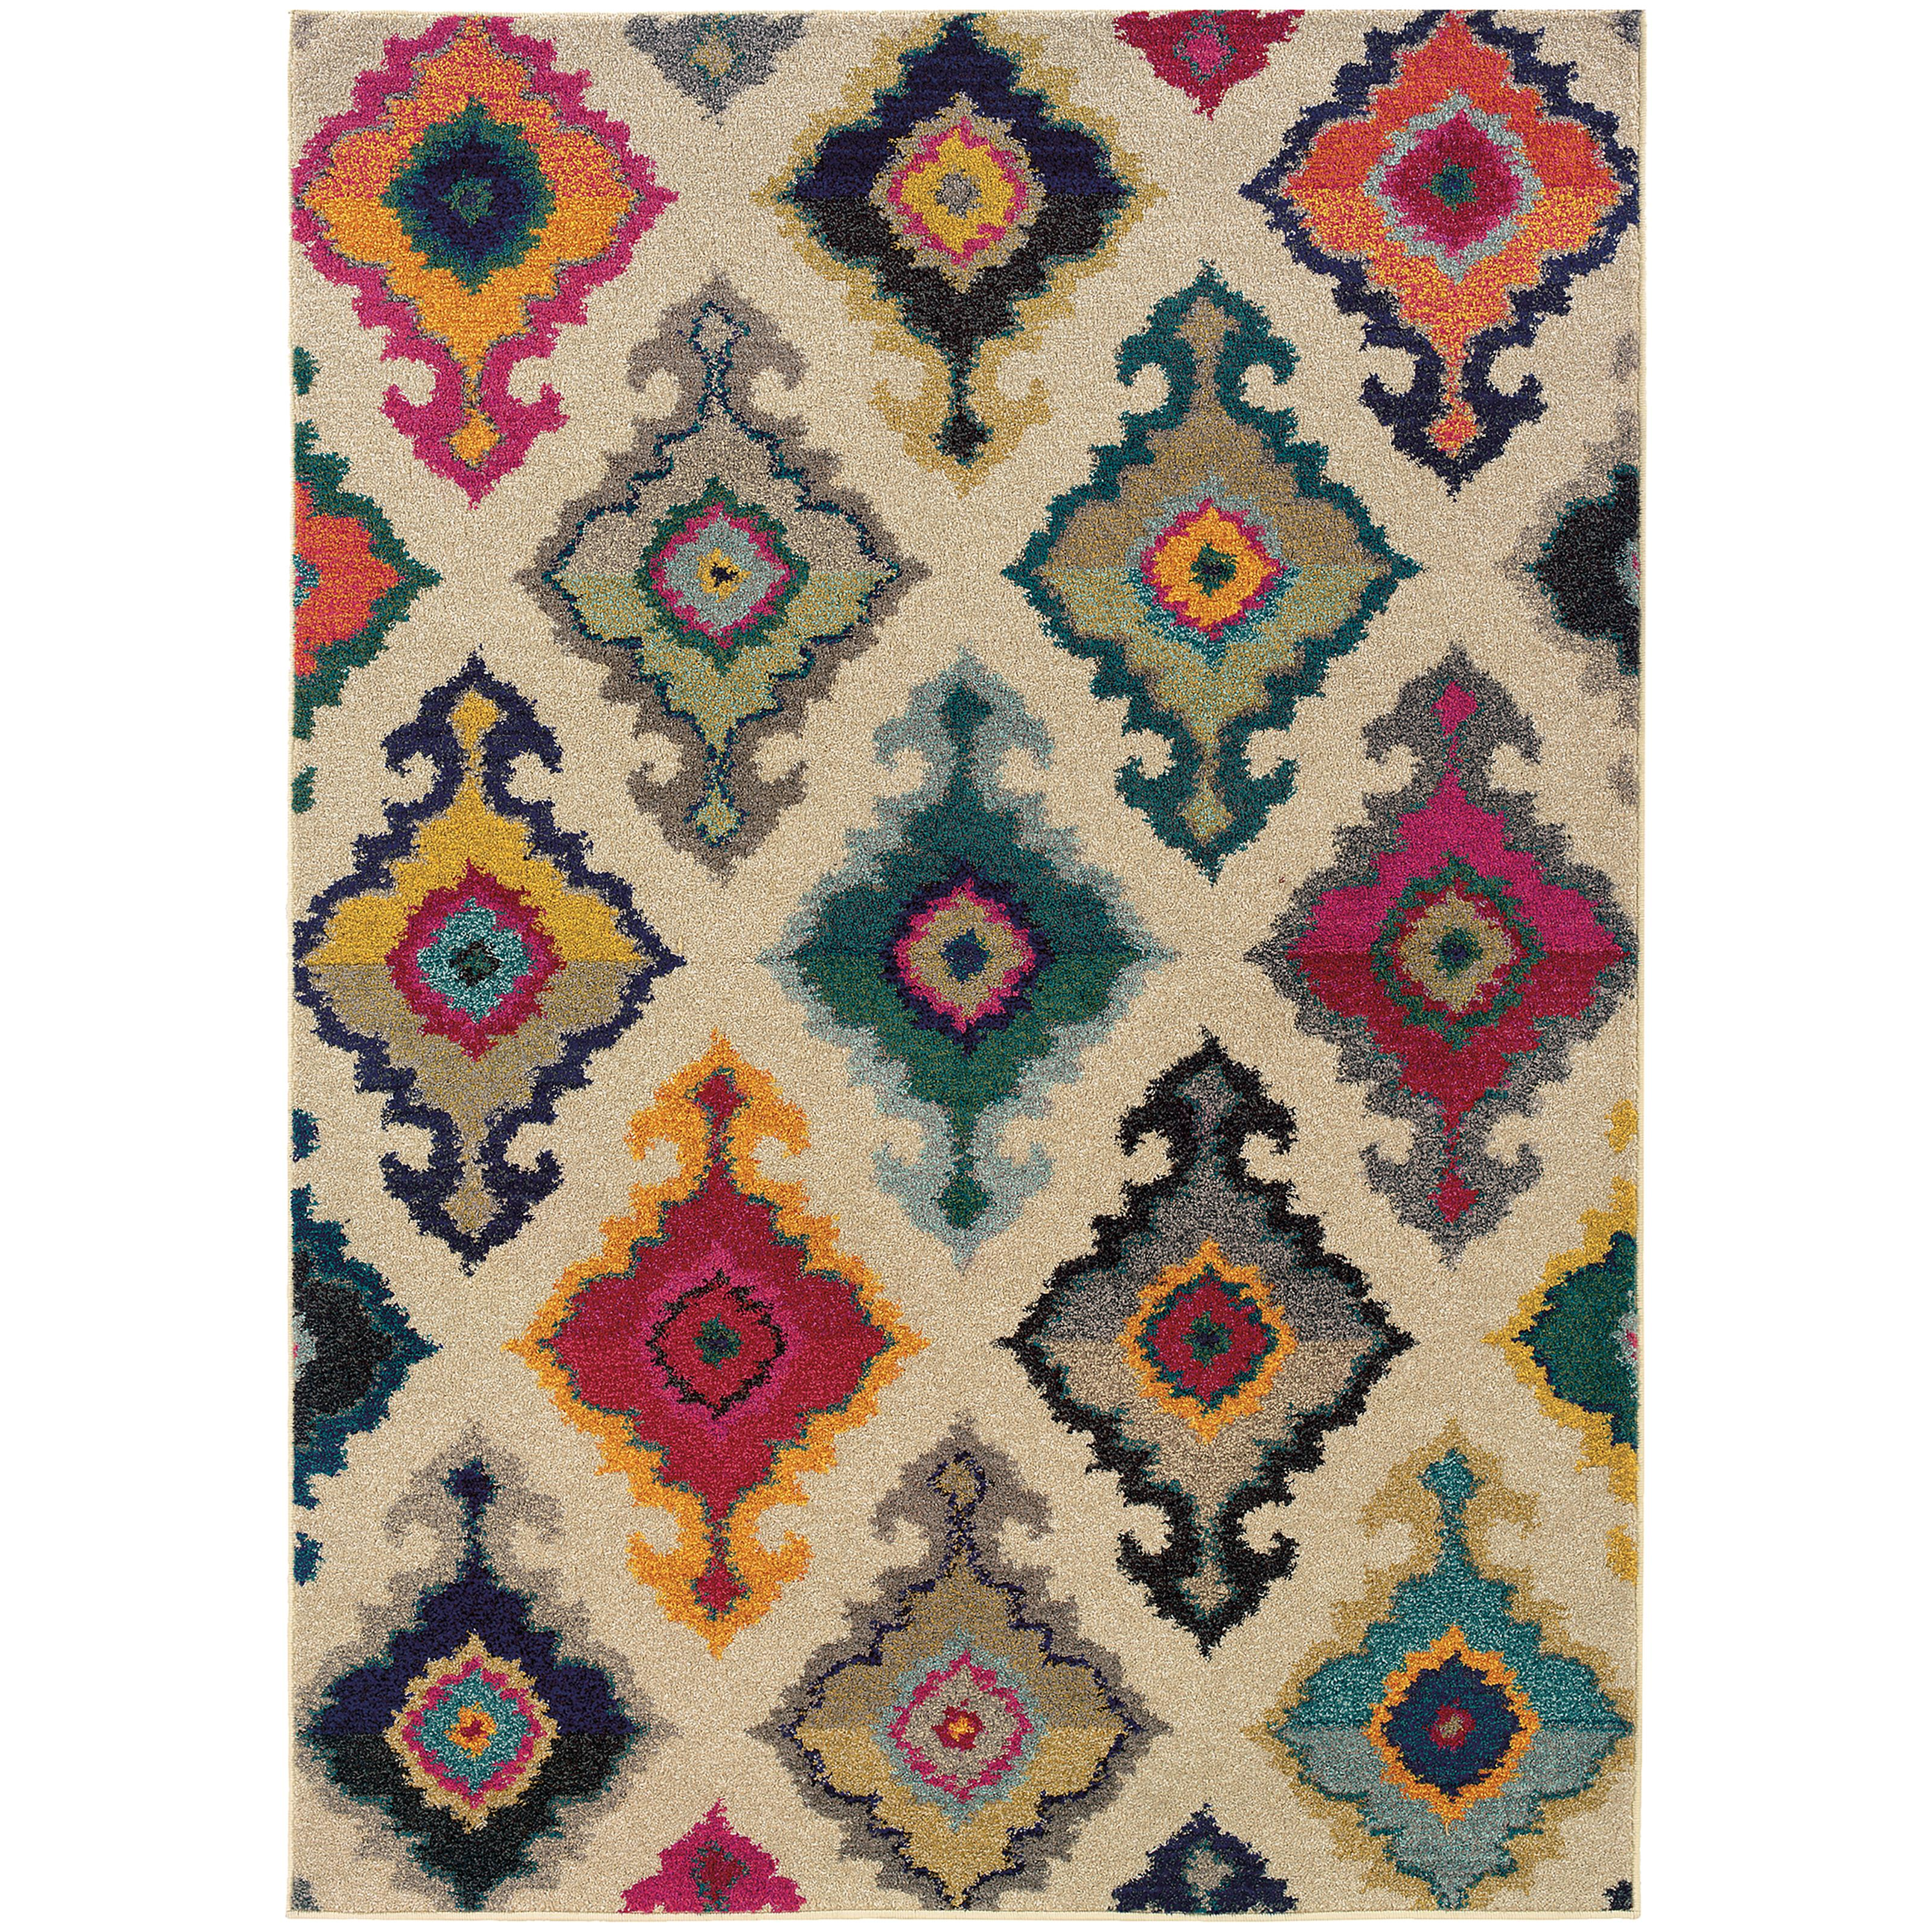 "Kaleidoscope 5' 3"" X  7' 6"" Rug by Oriental Weavers at Novello Home Furnishings"